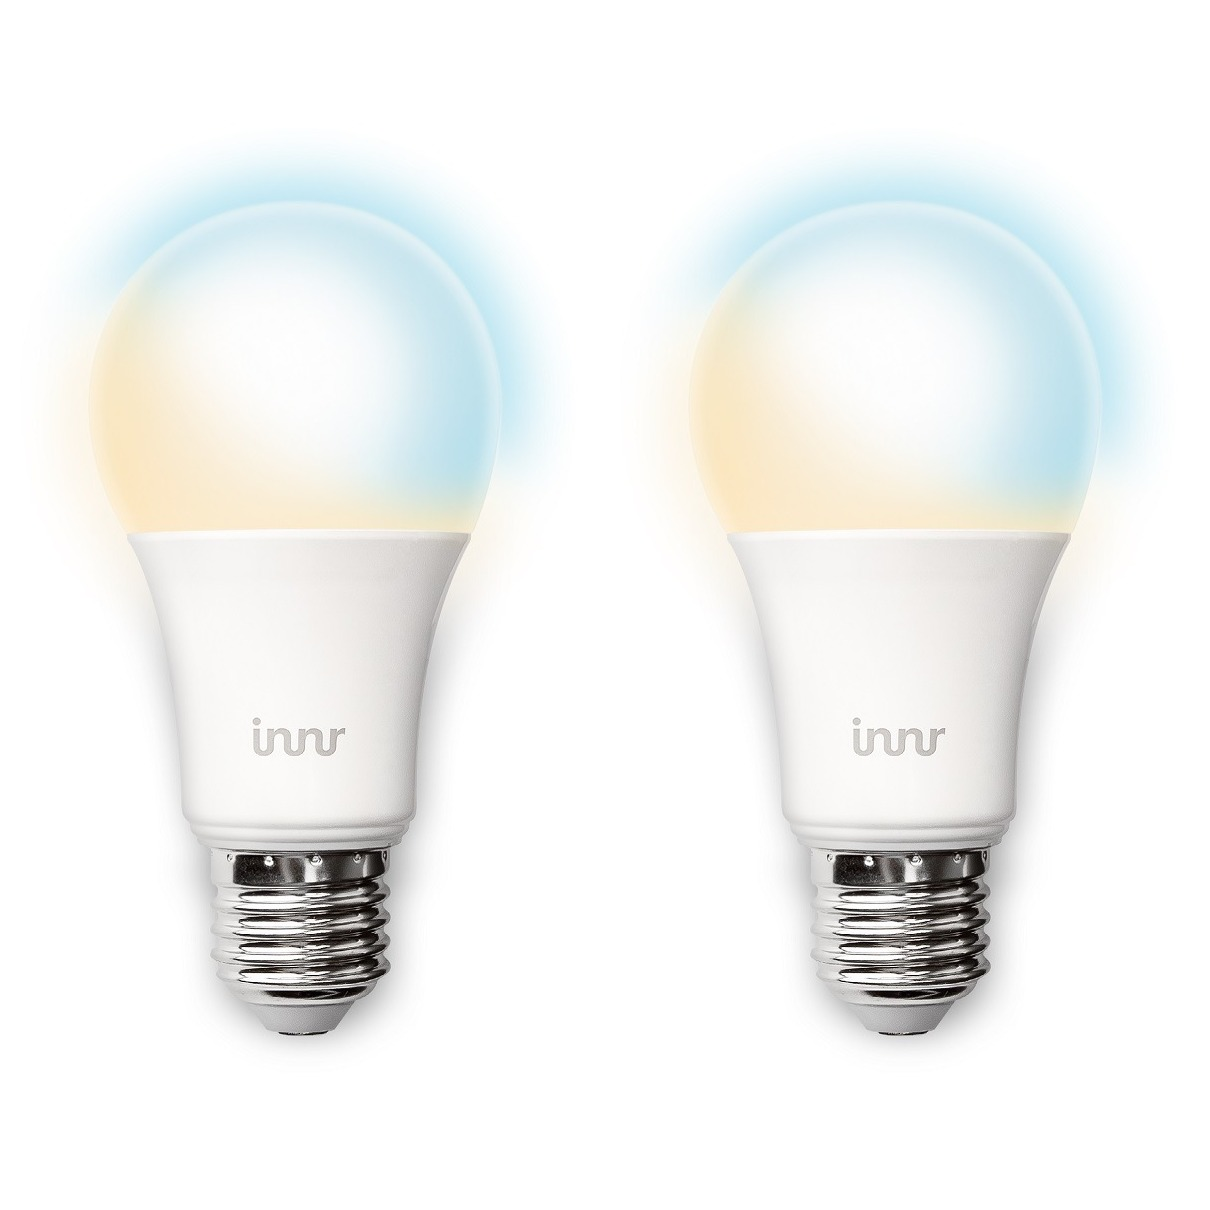 Innr smartverlichting Smart LED-bulb duo pack (E27) Tunable White - RB 178 T